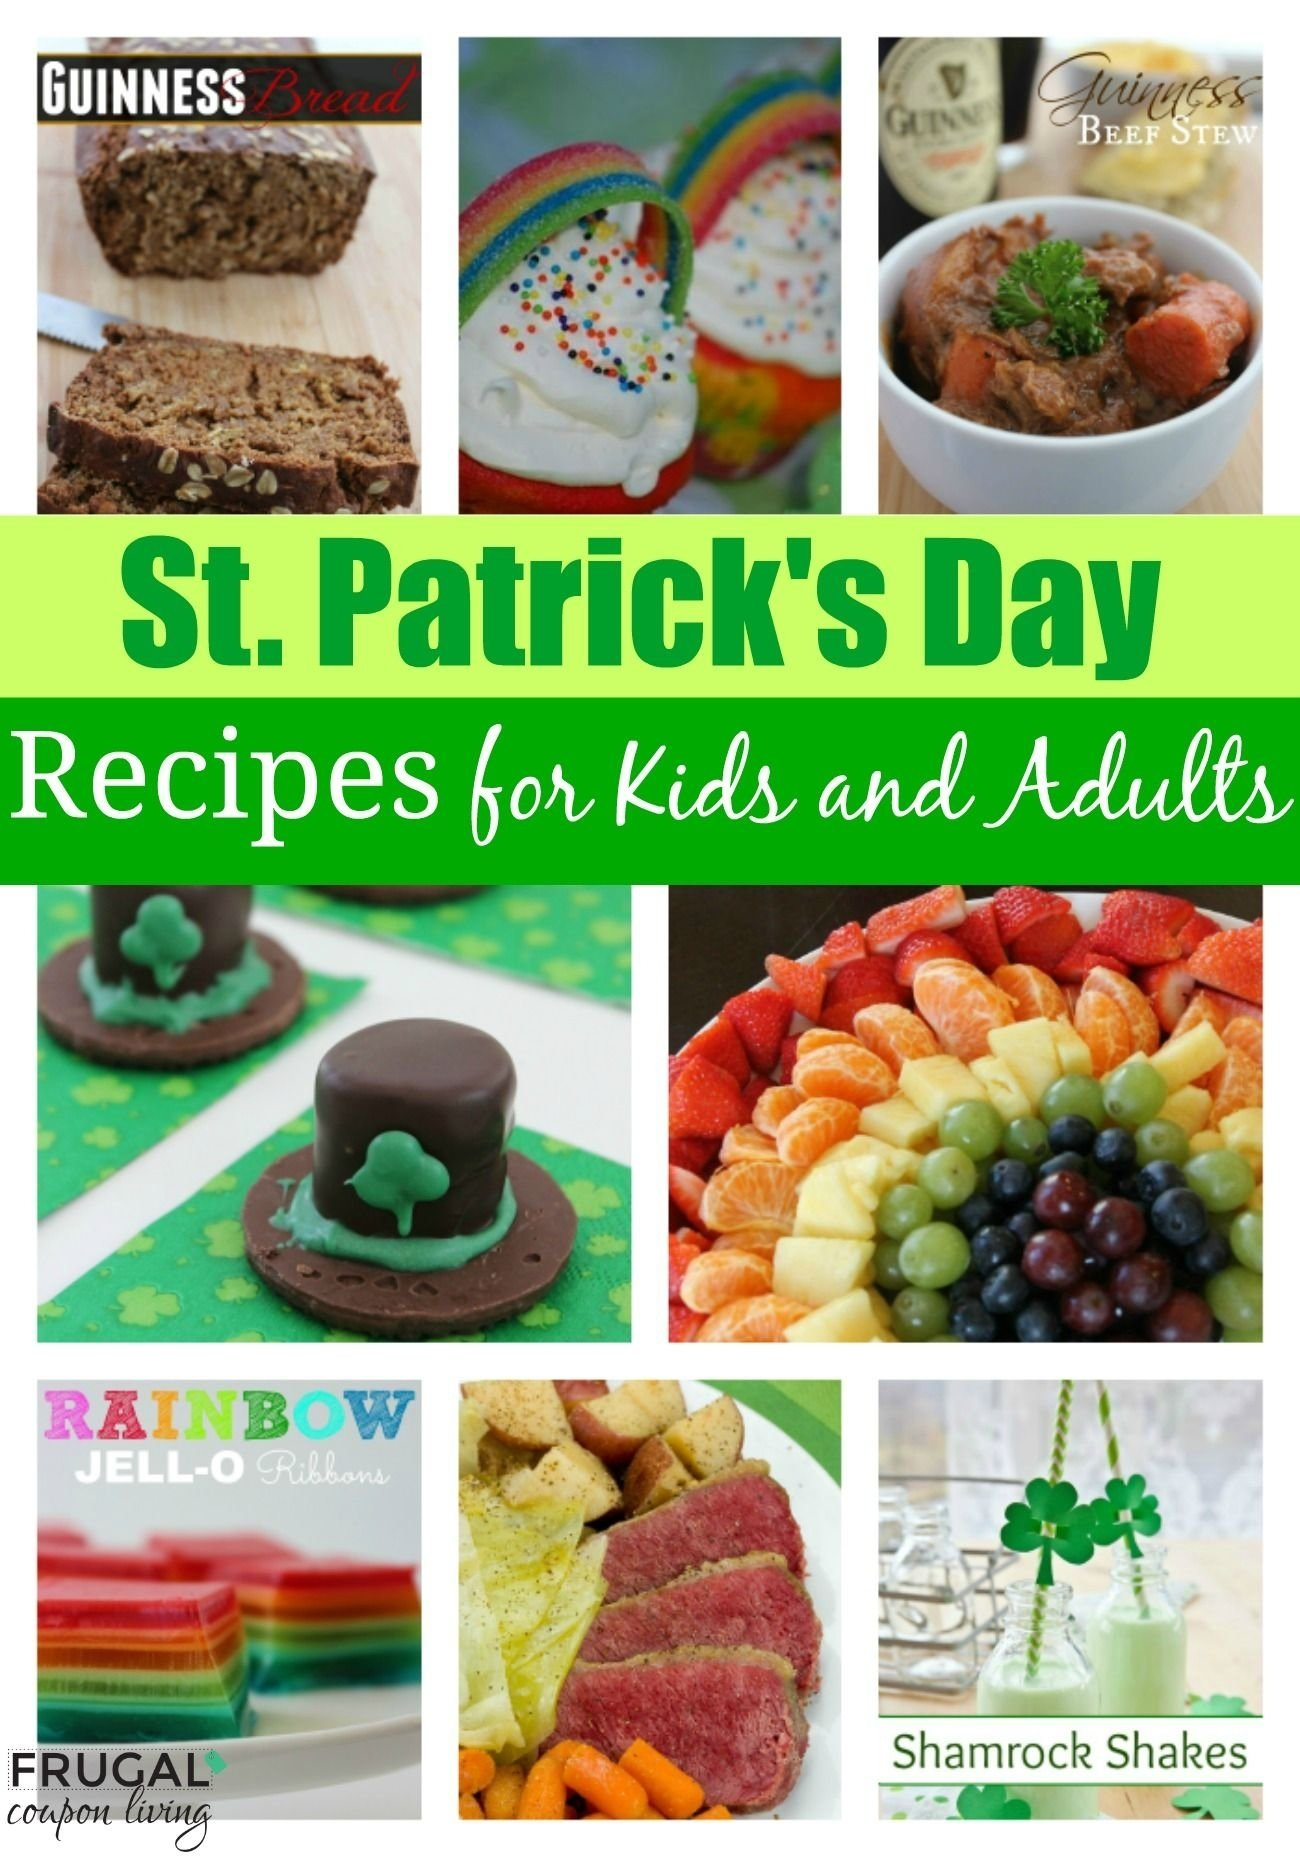 10 Elegant St Patricks Day Food Ideas st patricks day food ideas for kids and adults 2020